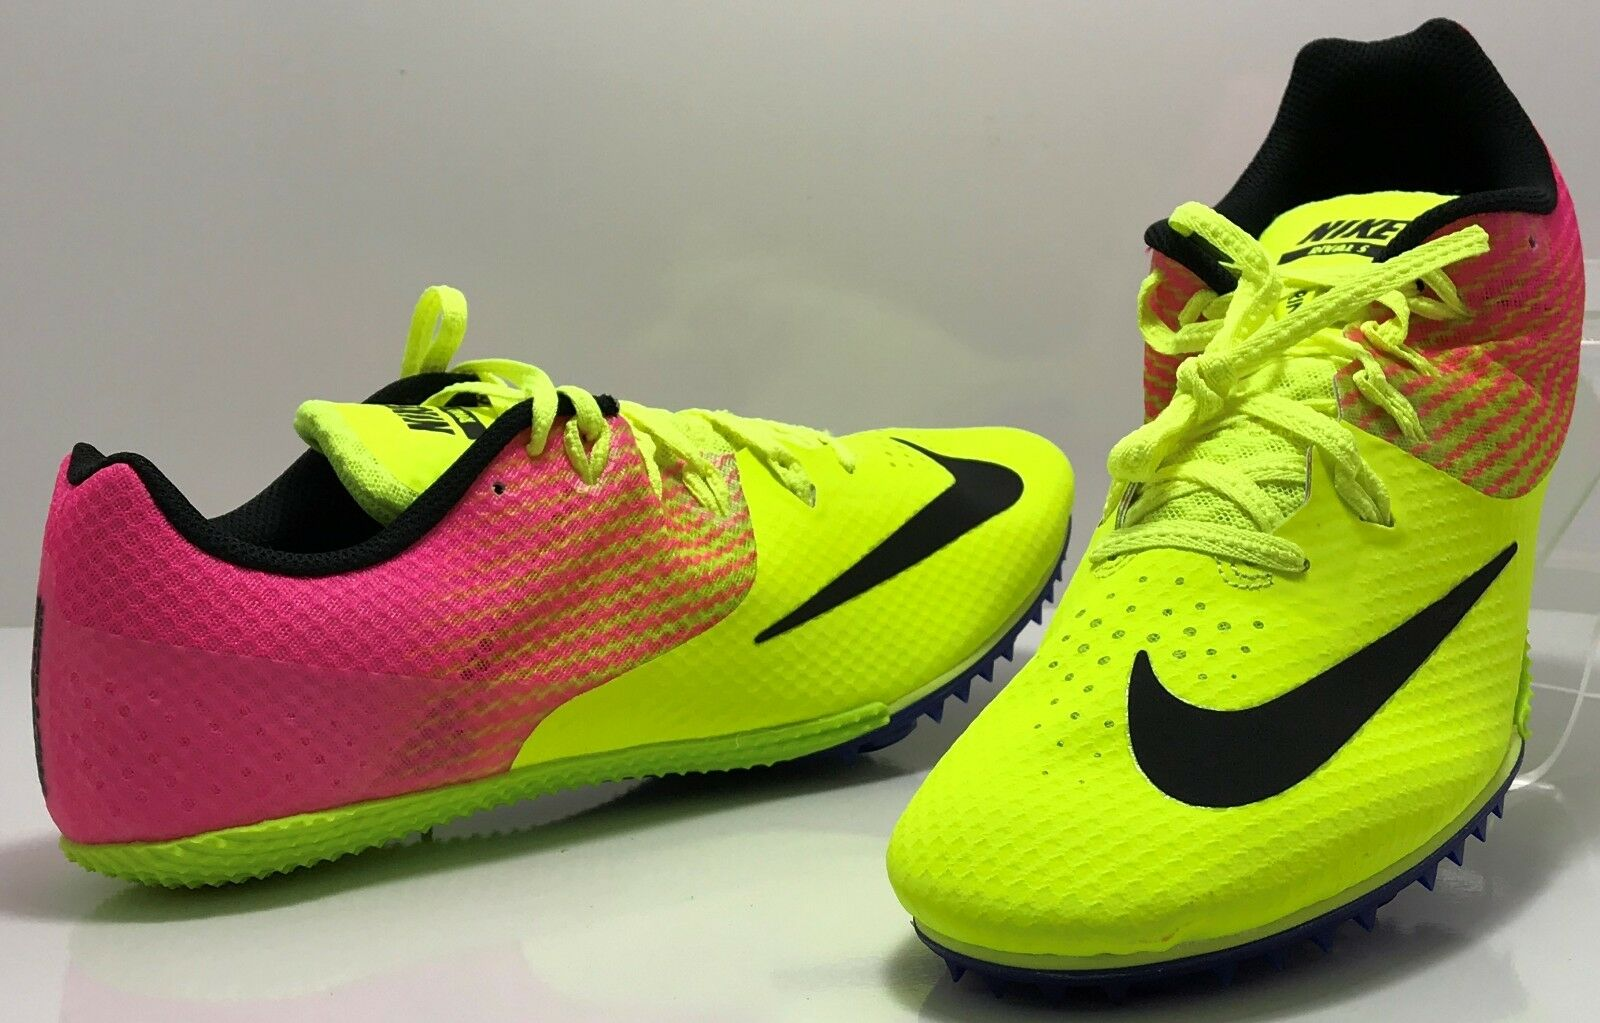 Nike Zoom Rival Shoes Men's 11 Pink Yellow S8 Track & Field Running 806554-999 Special limited time